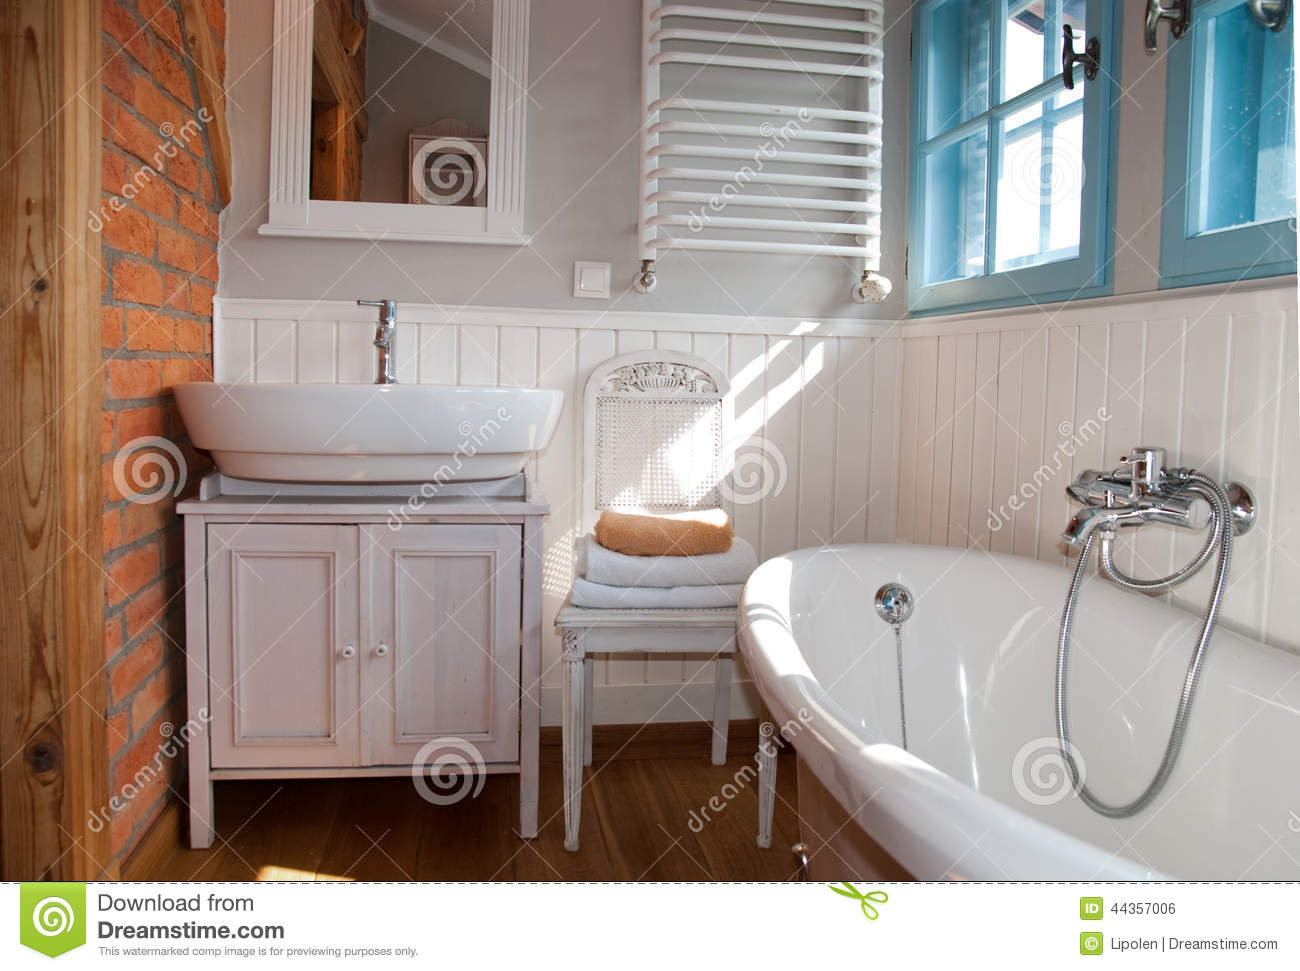 Baños Rusticos Azules:White and Grey Rustic Bathroom